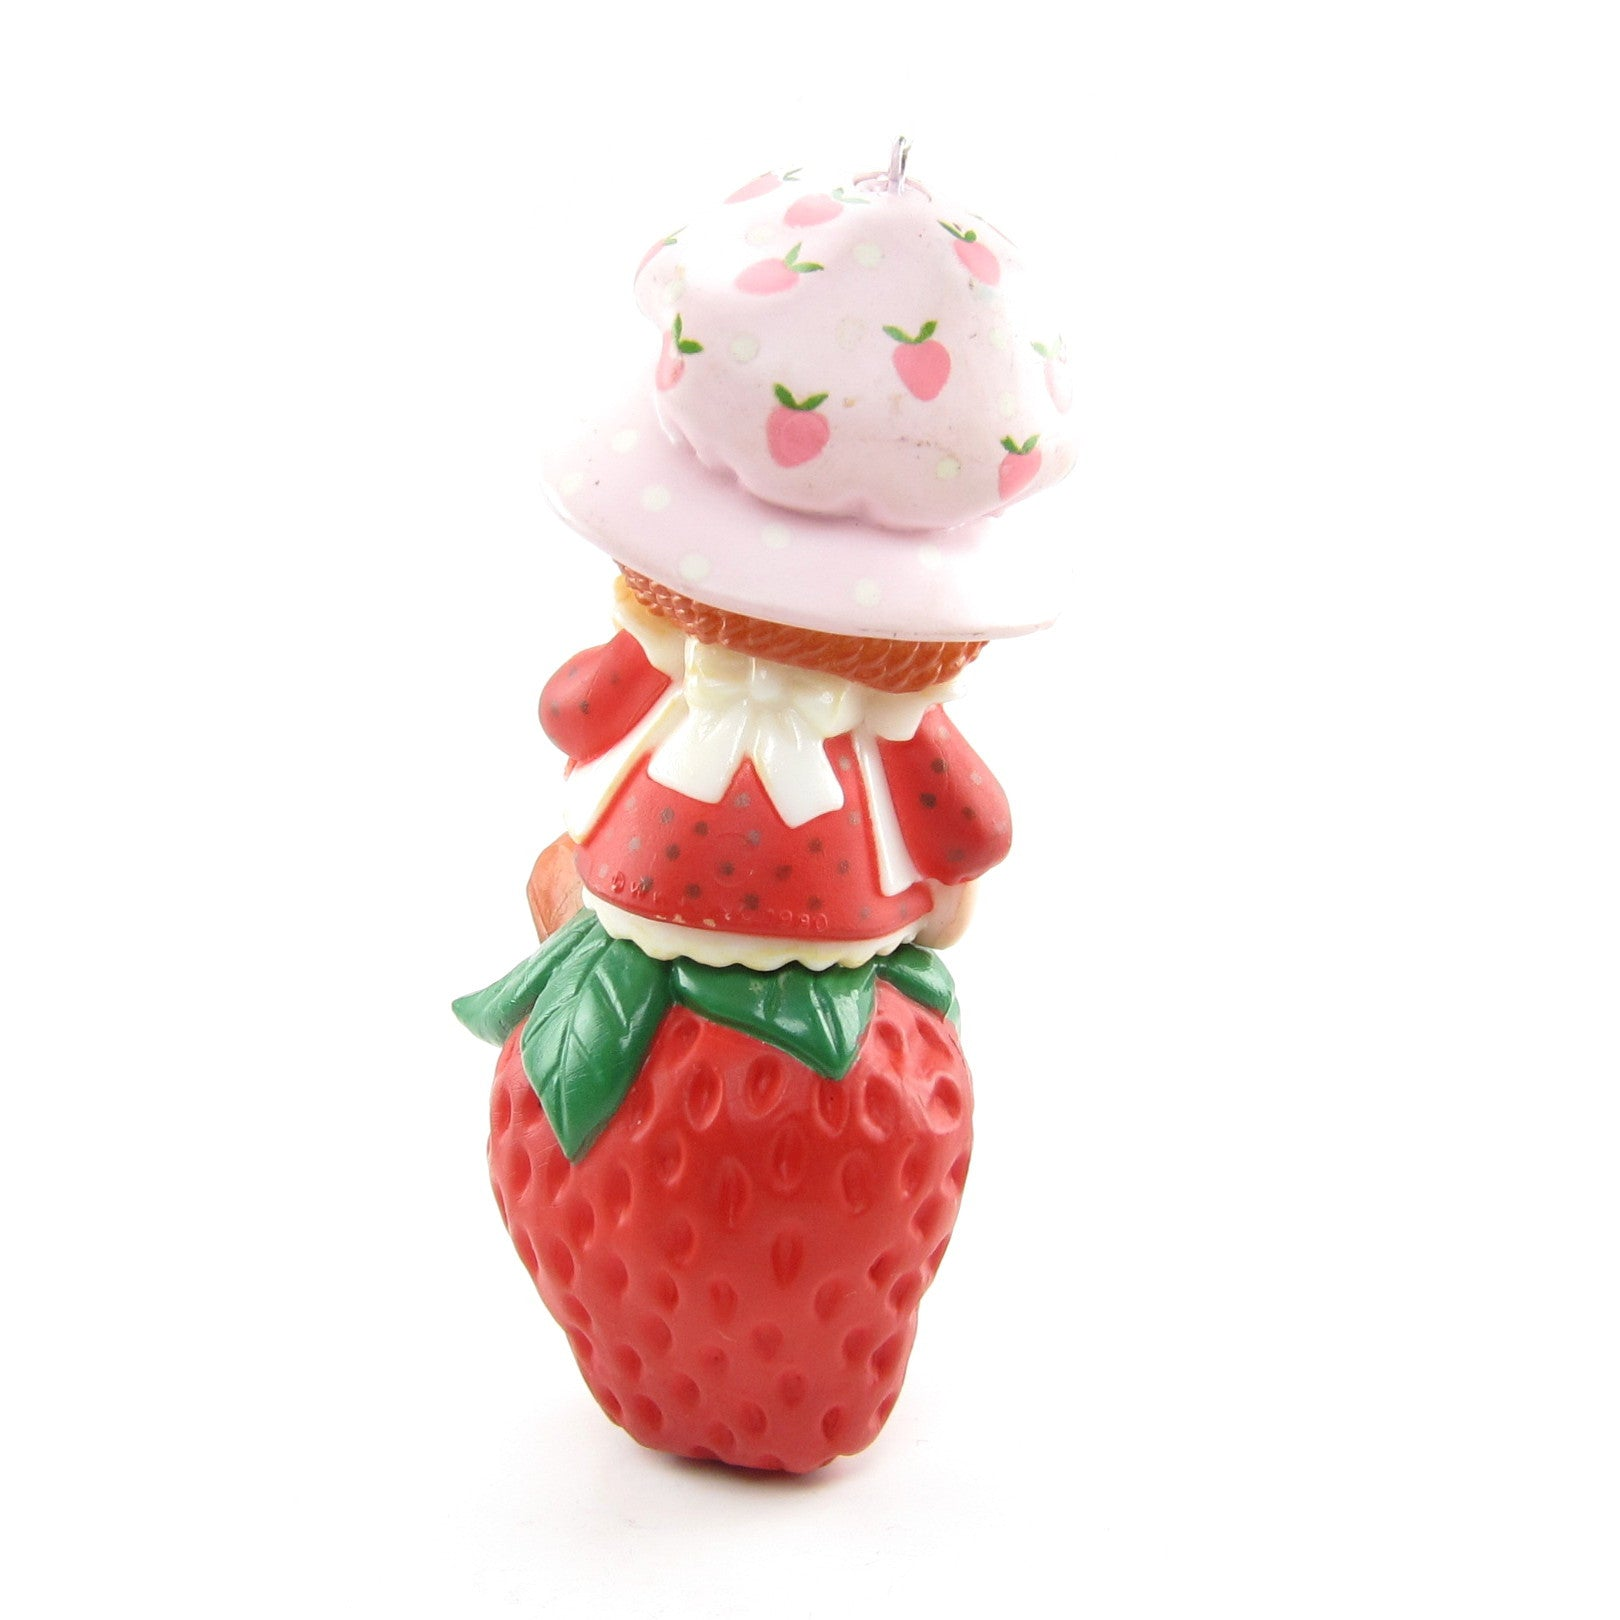 Strawberry christmas ornaments - Strawberry Shortcake Ornament Vintage Christmas Tree Decoration With Candy Cane